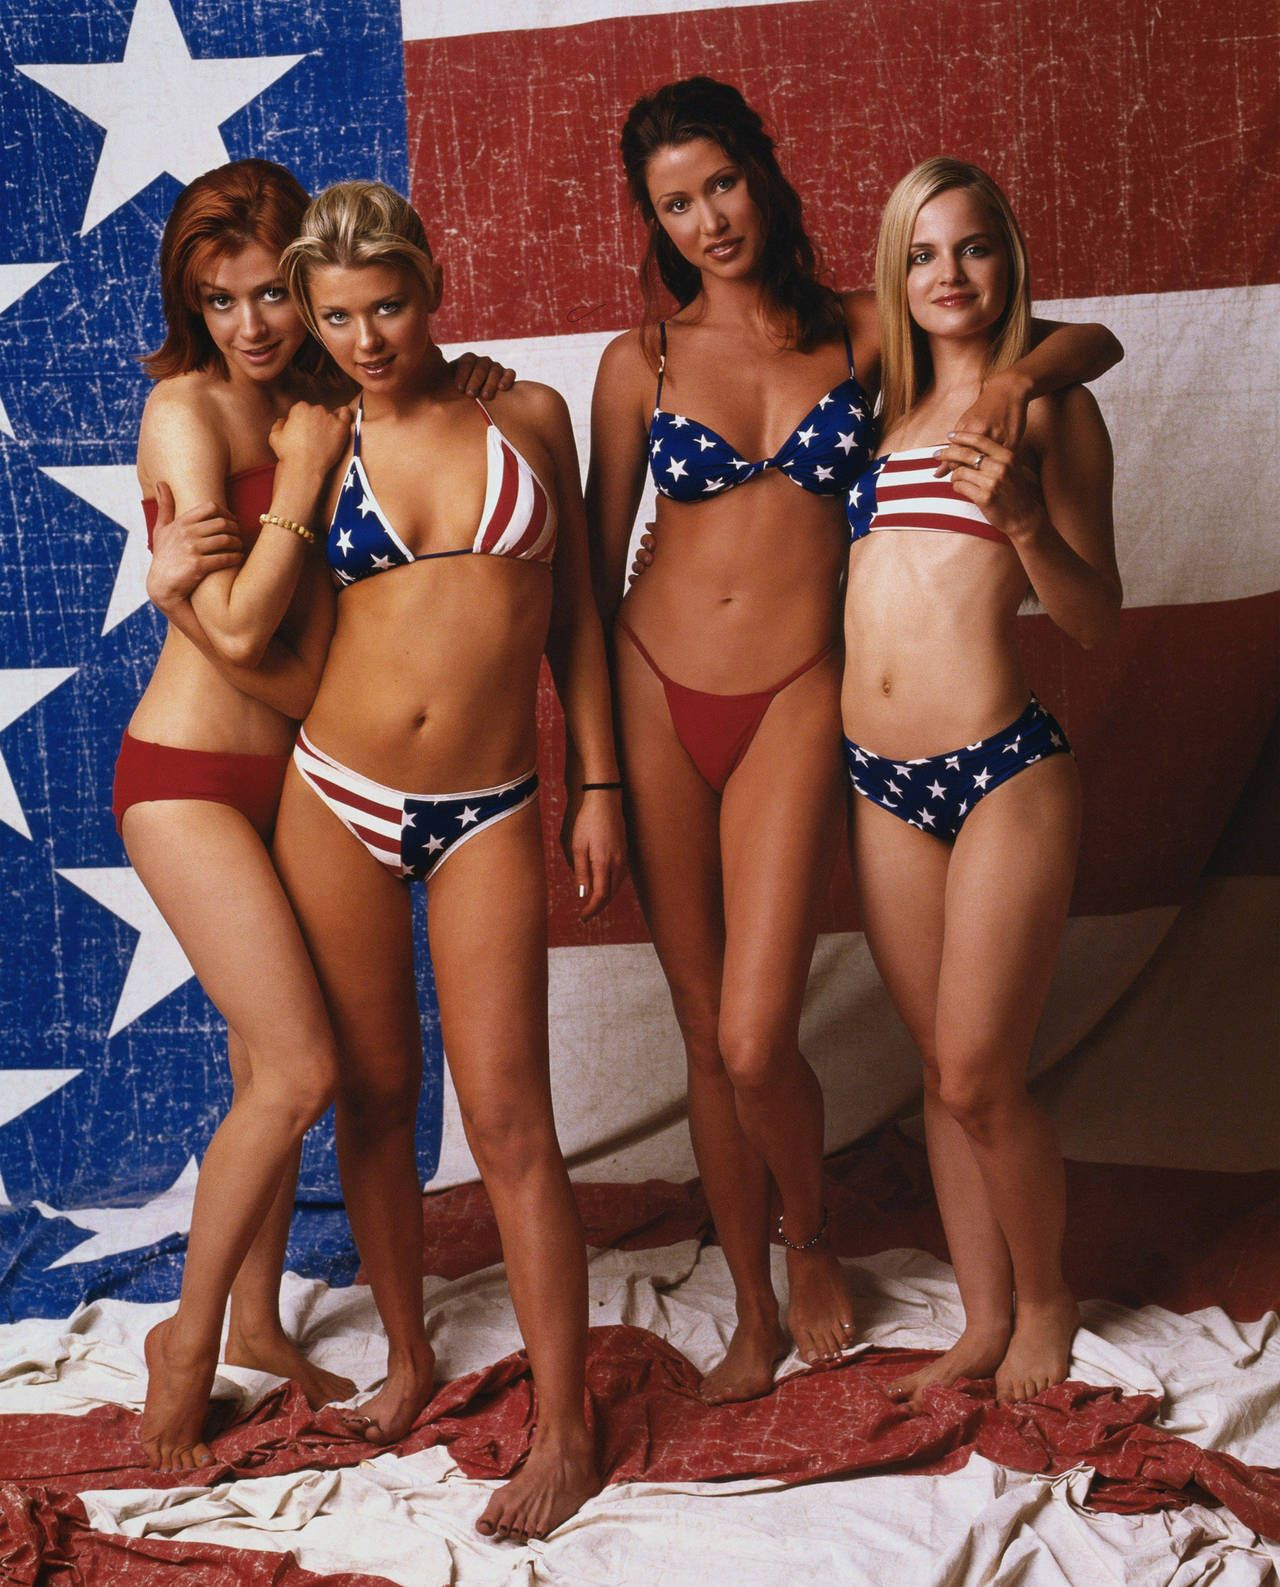 Are American pie nackte girls sorry, that